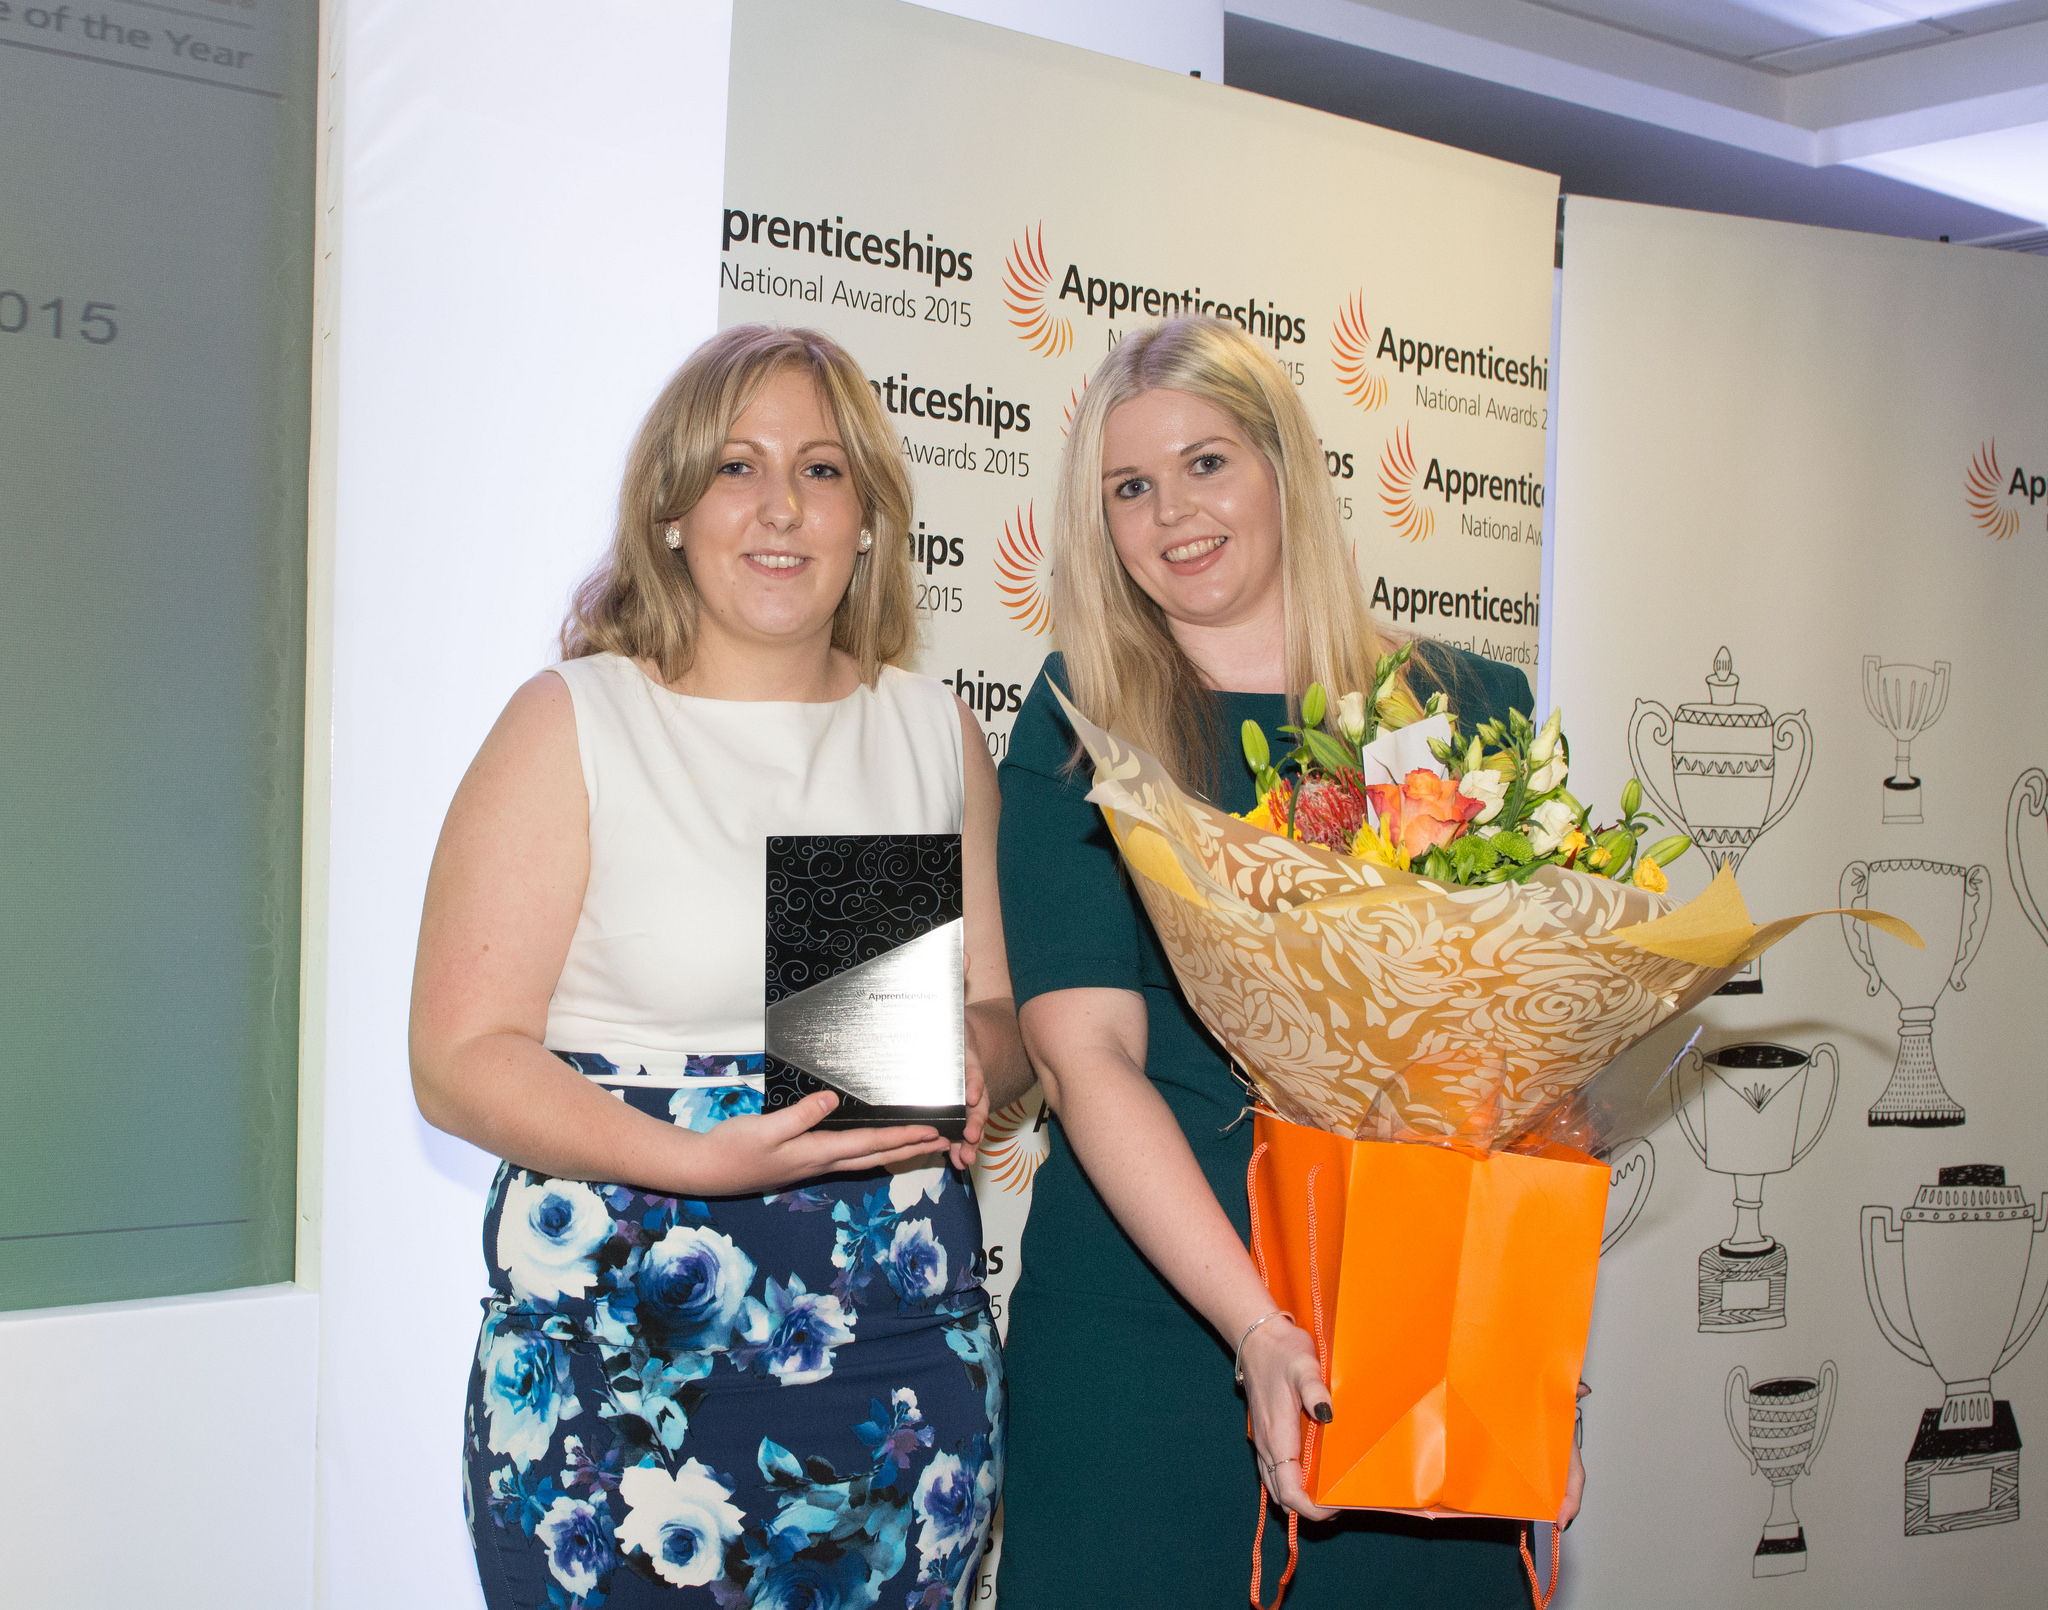 (L-R) Winner of the MacDonalds Award for Intermediate Apprentice of the Year - Kathleen Sandford, level two, (left)The Community Housing Group with Evie Brookes, the West Midlands Young Apprentice Ambassador, The Community Housing Group, October 8